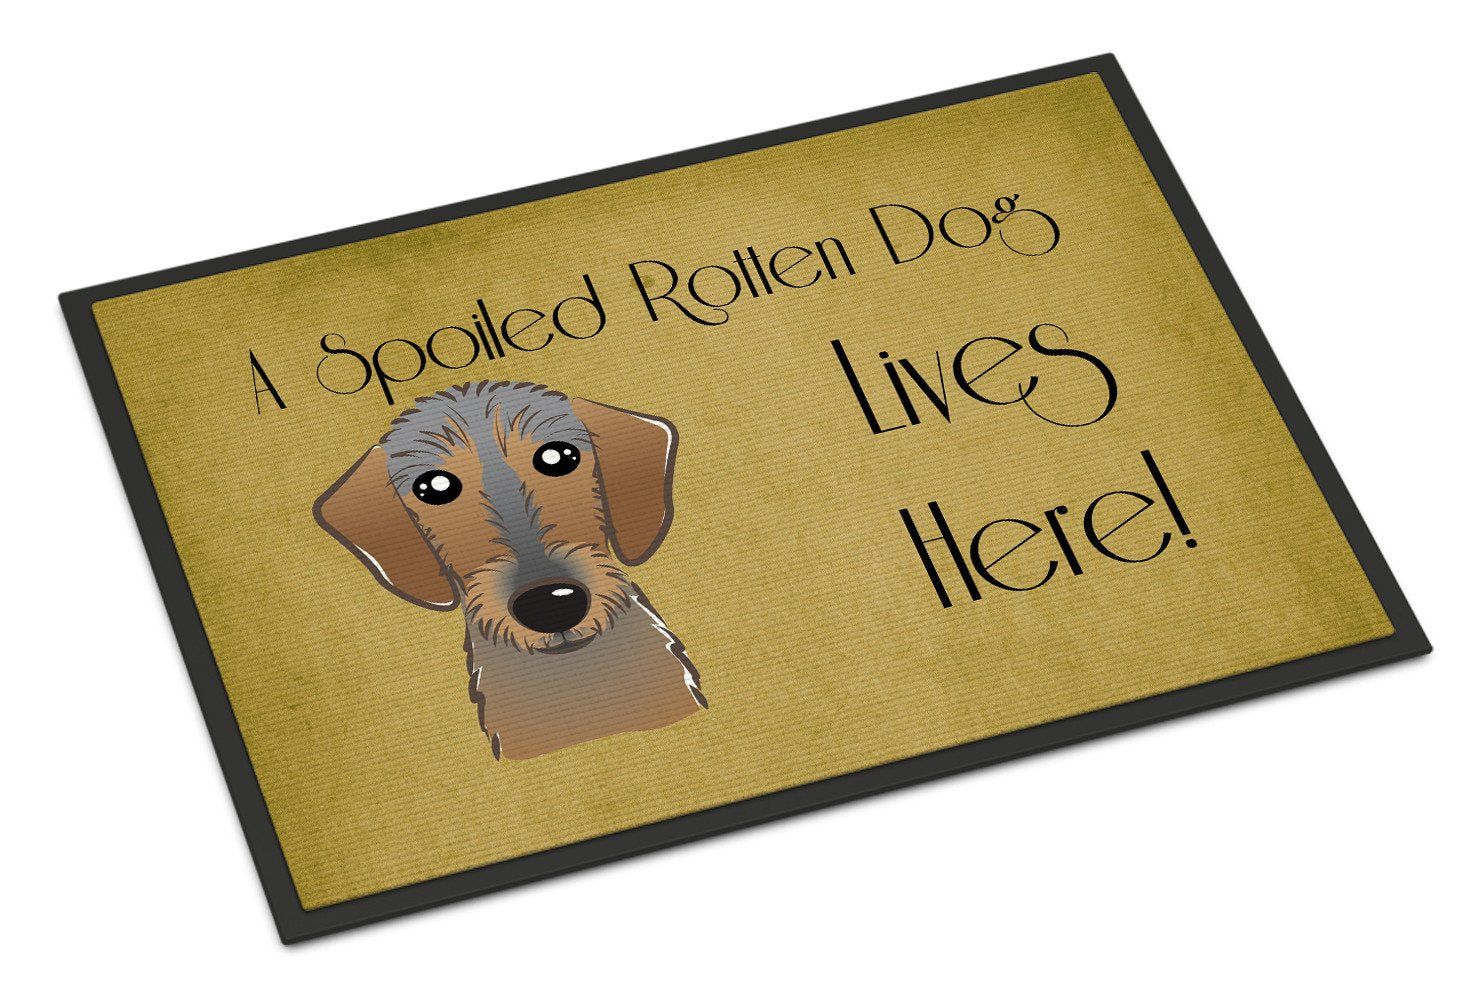 Wirehaired Dachshund Spoiled Dog Lives Here Indoor or Outdoor Mat 18x27 BB1481MAT - the-store.com